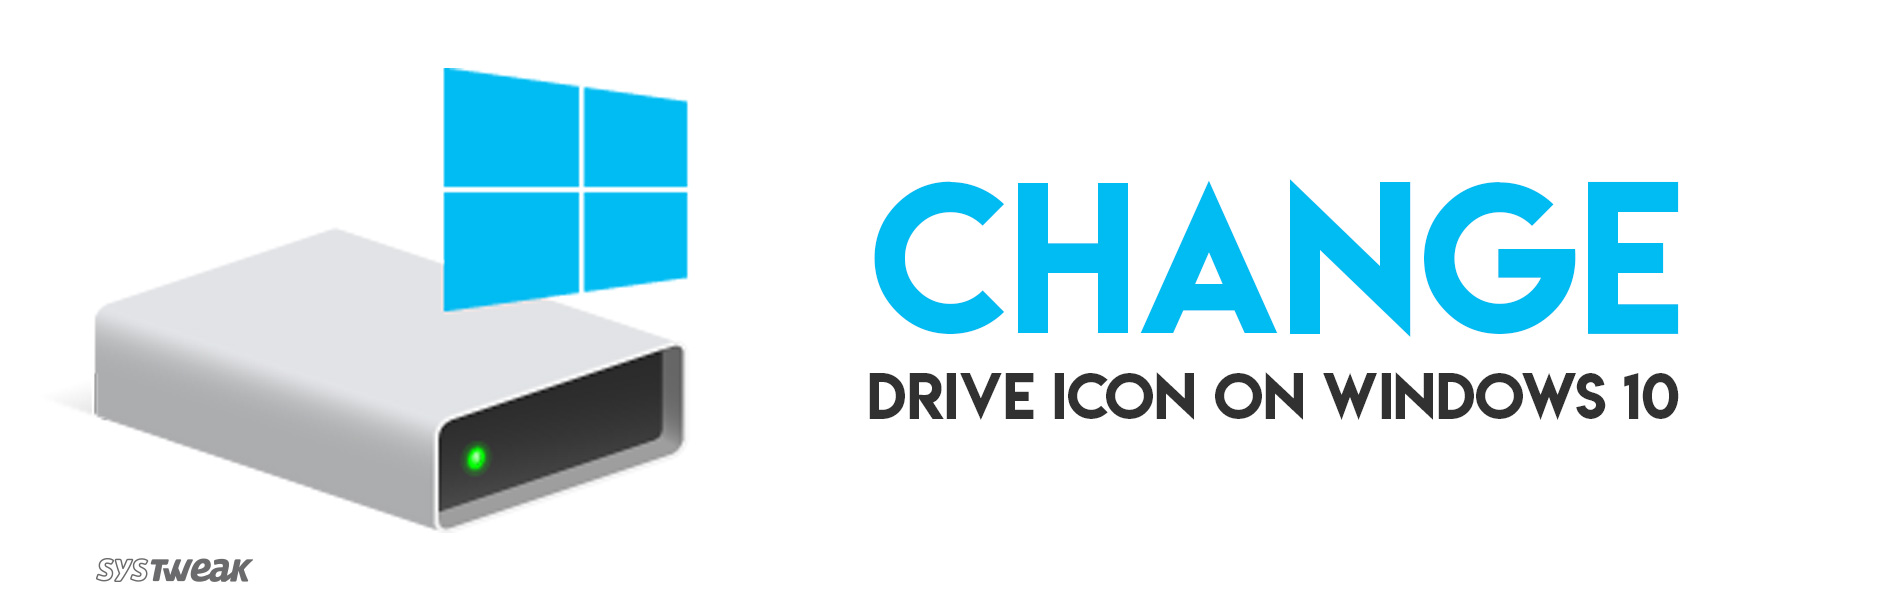 How To Change Drive Icon On Windows 10?